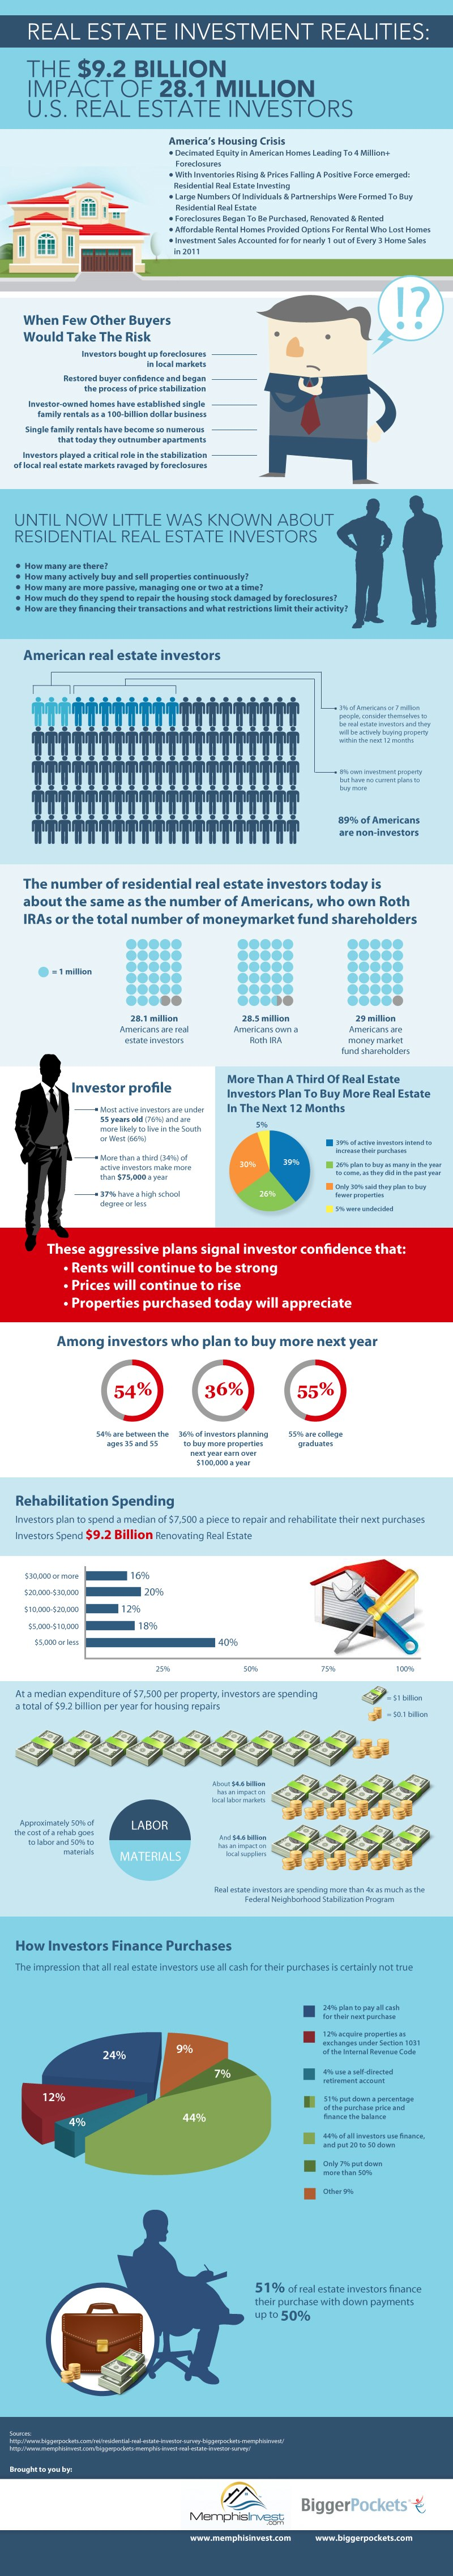 the-92-billion-impact-of-real-estate-investors_5068c09ce5873